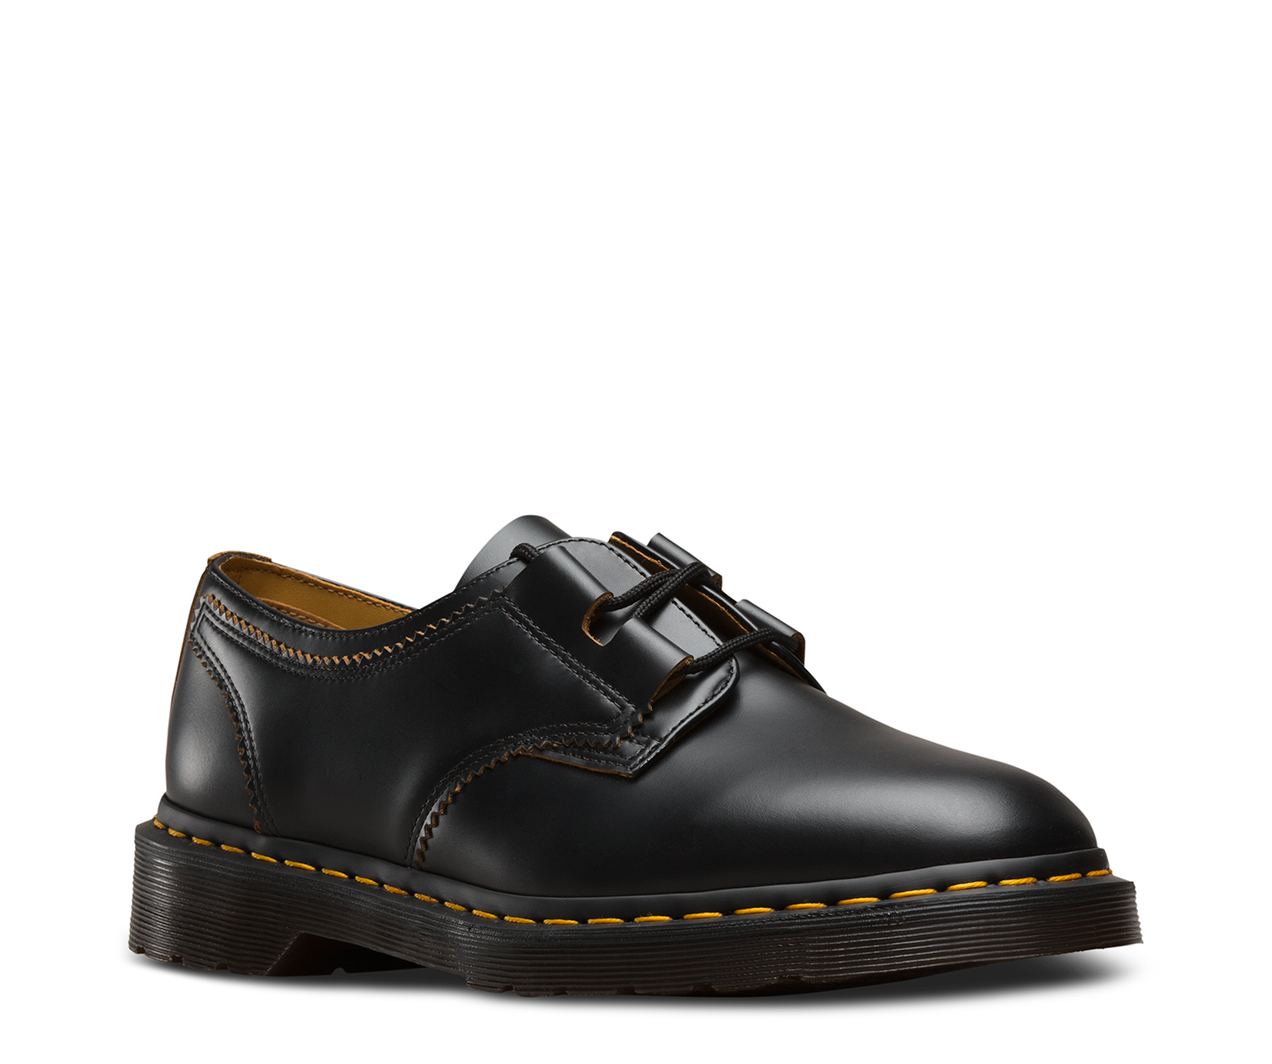 1461 Ghillie Aw18 Dr Martens Official Site